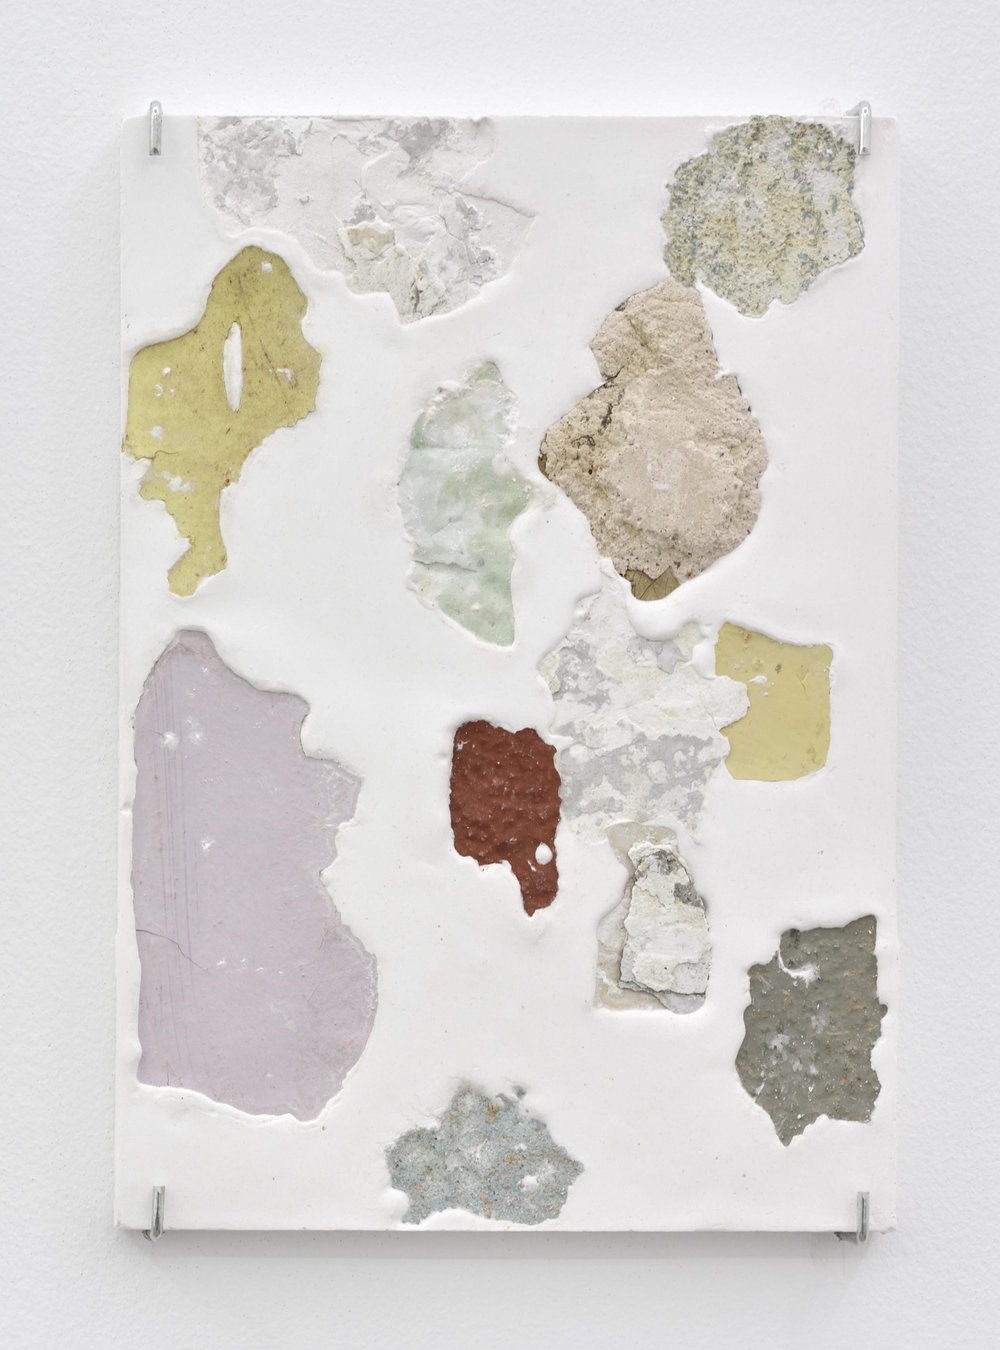 Manoela Medeiros  Continent,  2018 Plaster and fragments of walls 30 x 21 x 2,5 cm 11 13/16 x 8 9/32 x 1 inches